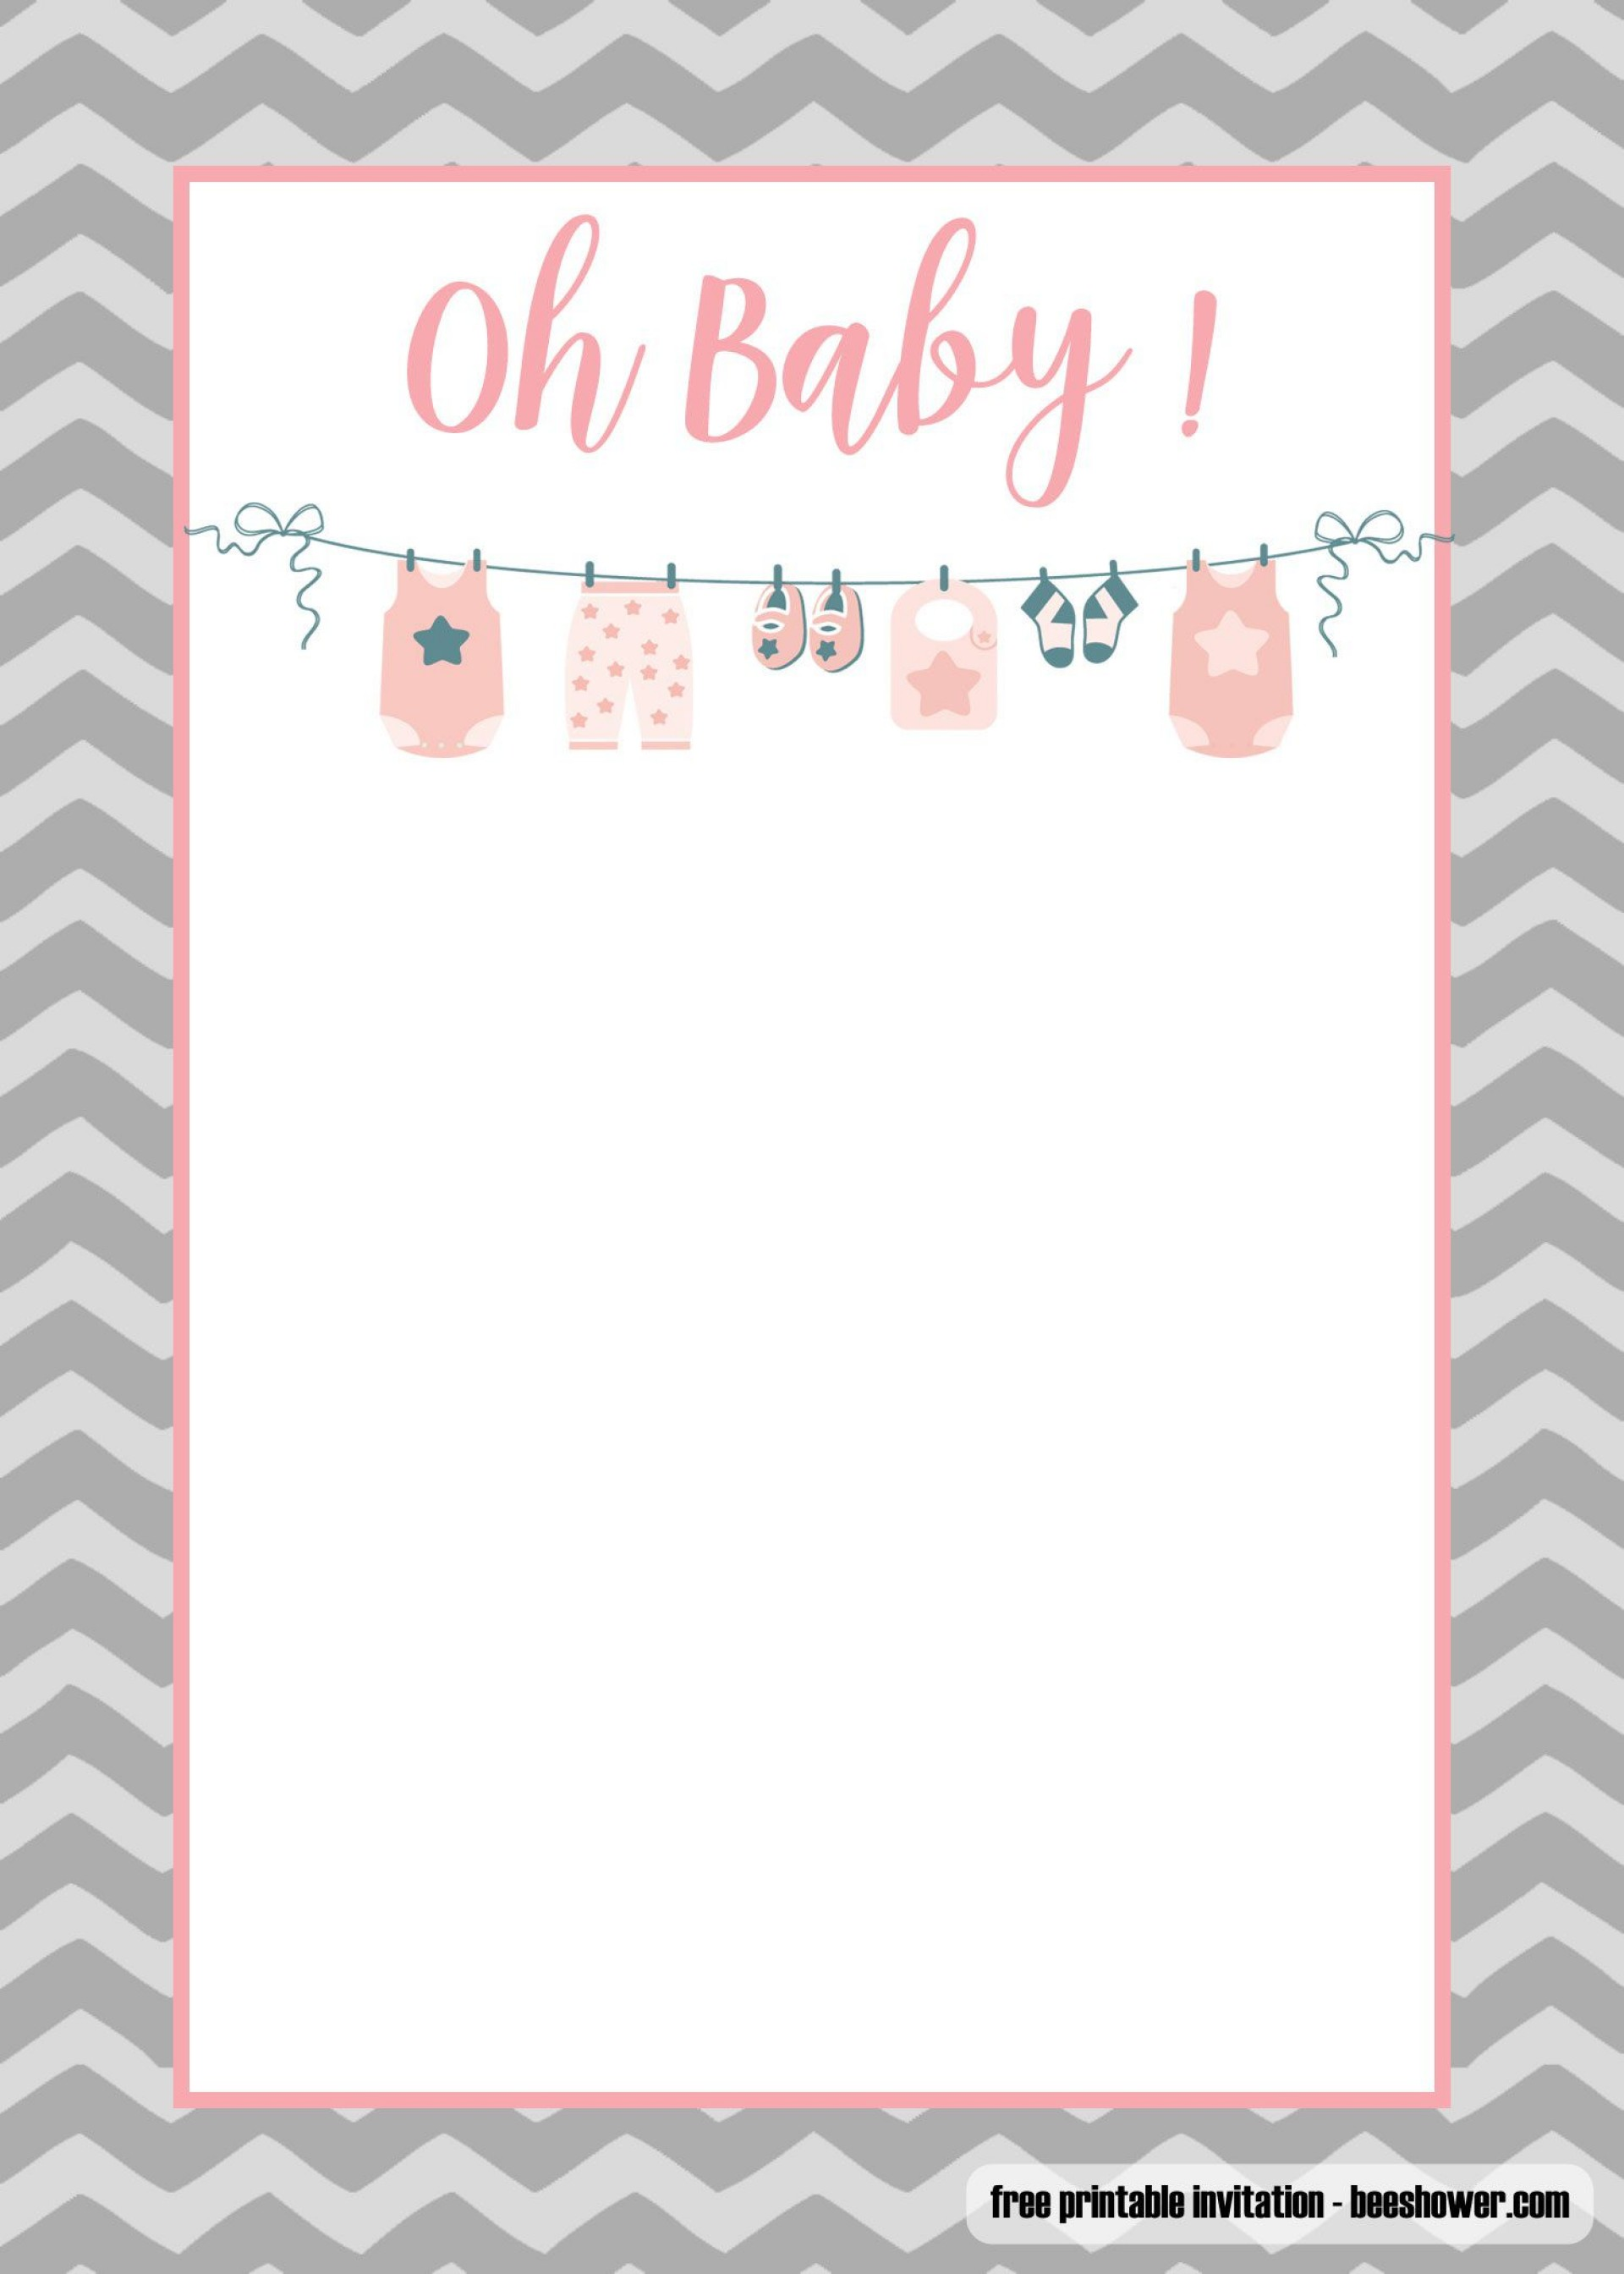 006 Incredible Baby Shower Invite Template Word High Definition  Invitation Wording Sample Free Example1920